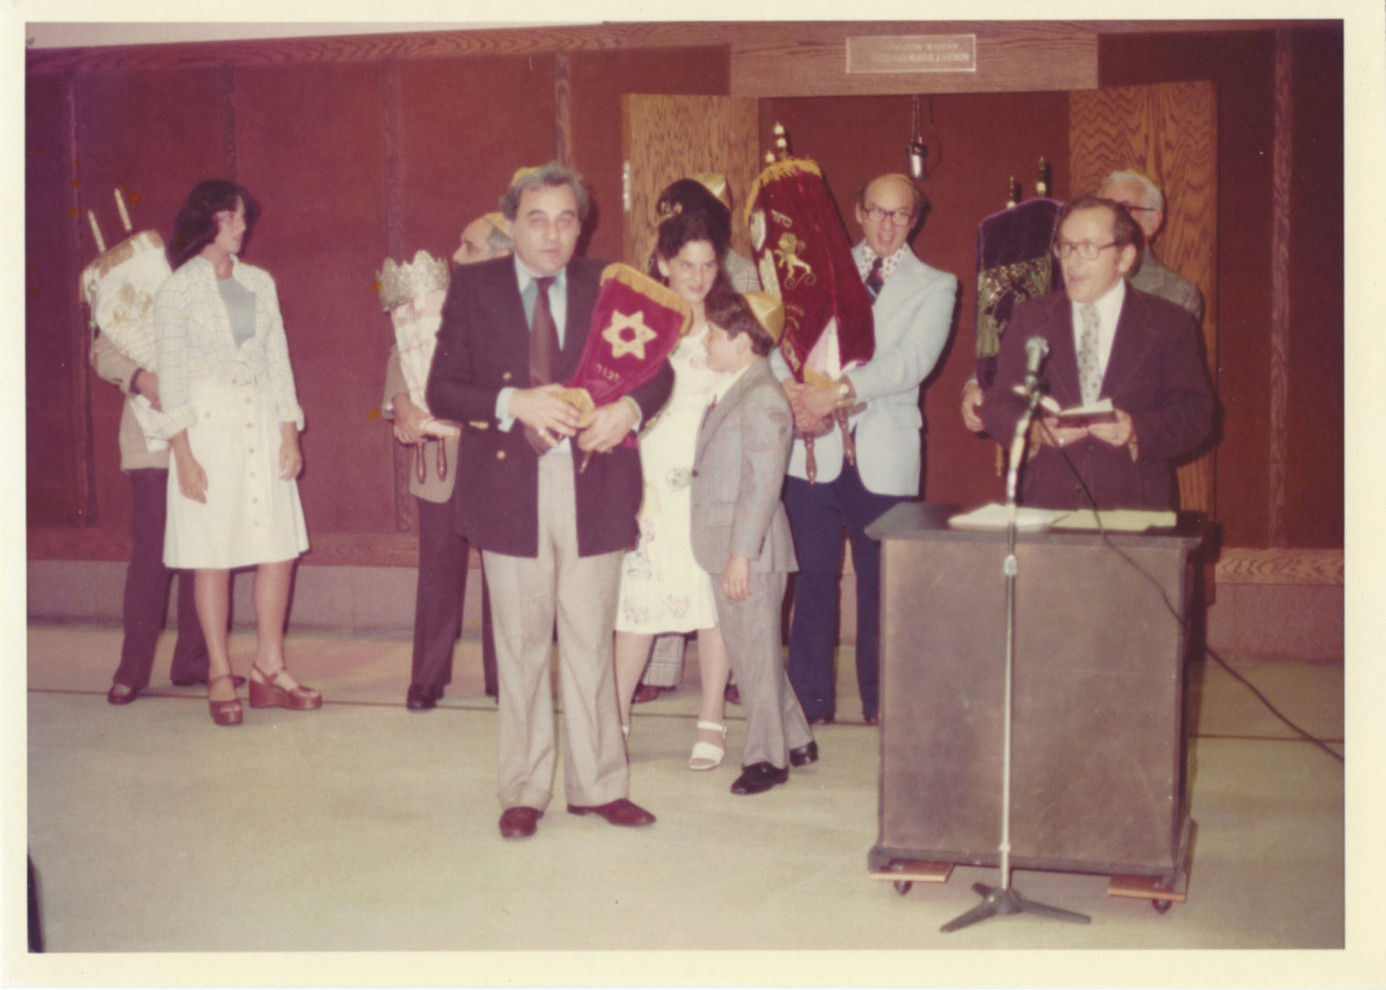 Arthur Weil, president of Solomon Schechter Day School in Chicago 1972, at the dedication ceremony for the little tattooed Torah that the book was based on.